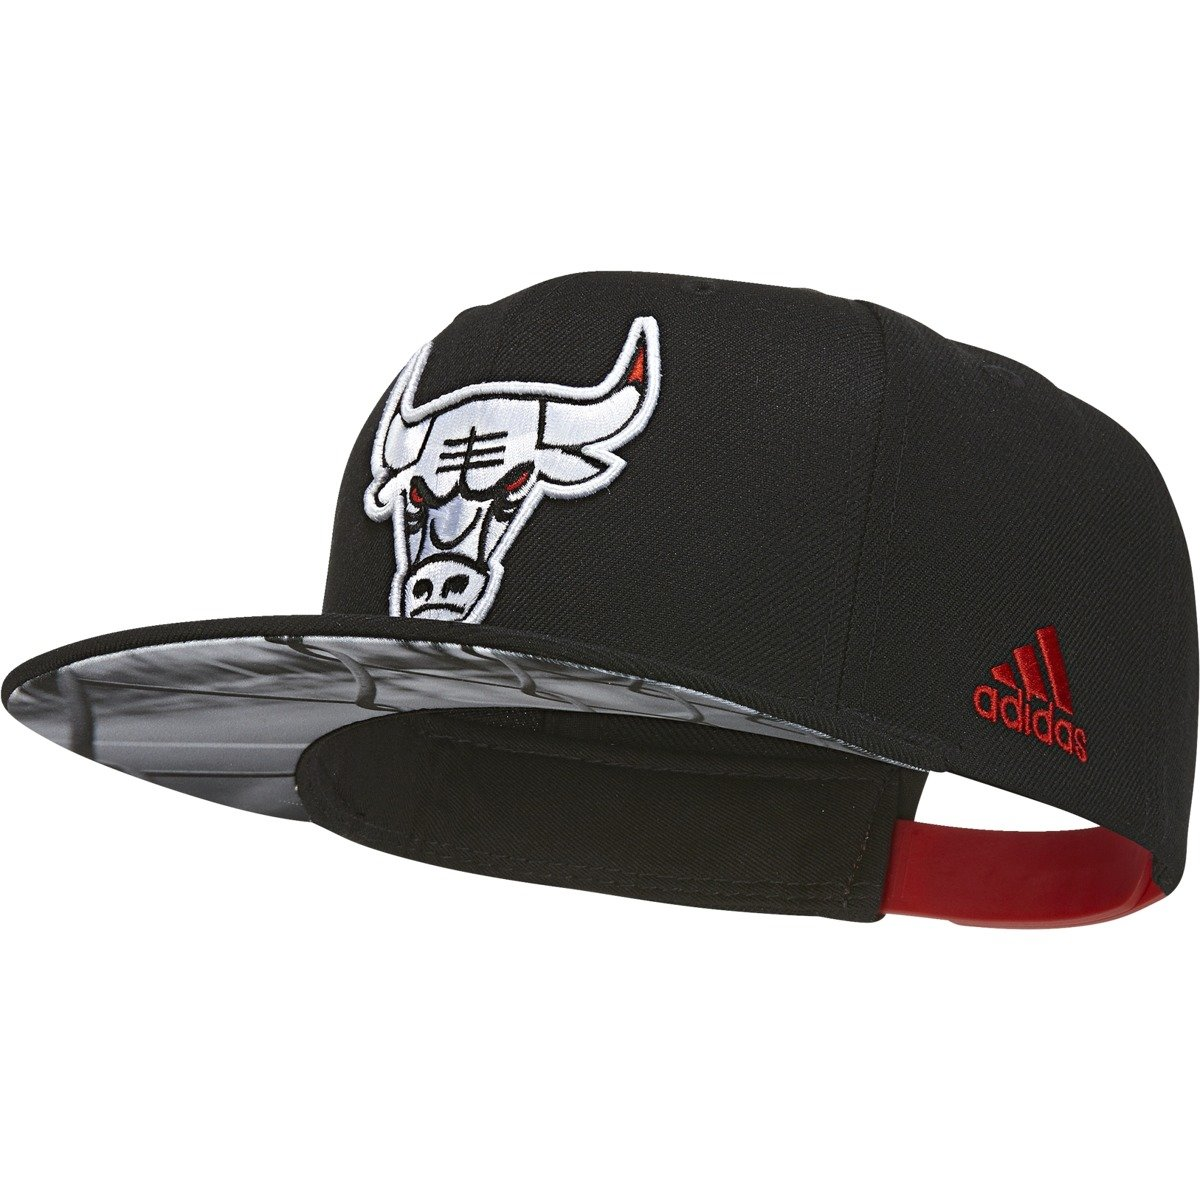 adidas nba chicago bulls snapback bk3040 basketball clothing caps sklep koszykarski. Black Bedroom Furniture Sets. Home Design Ideas